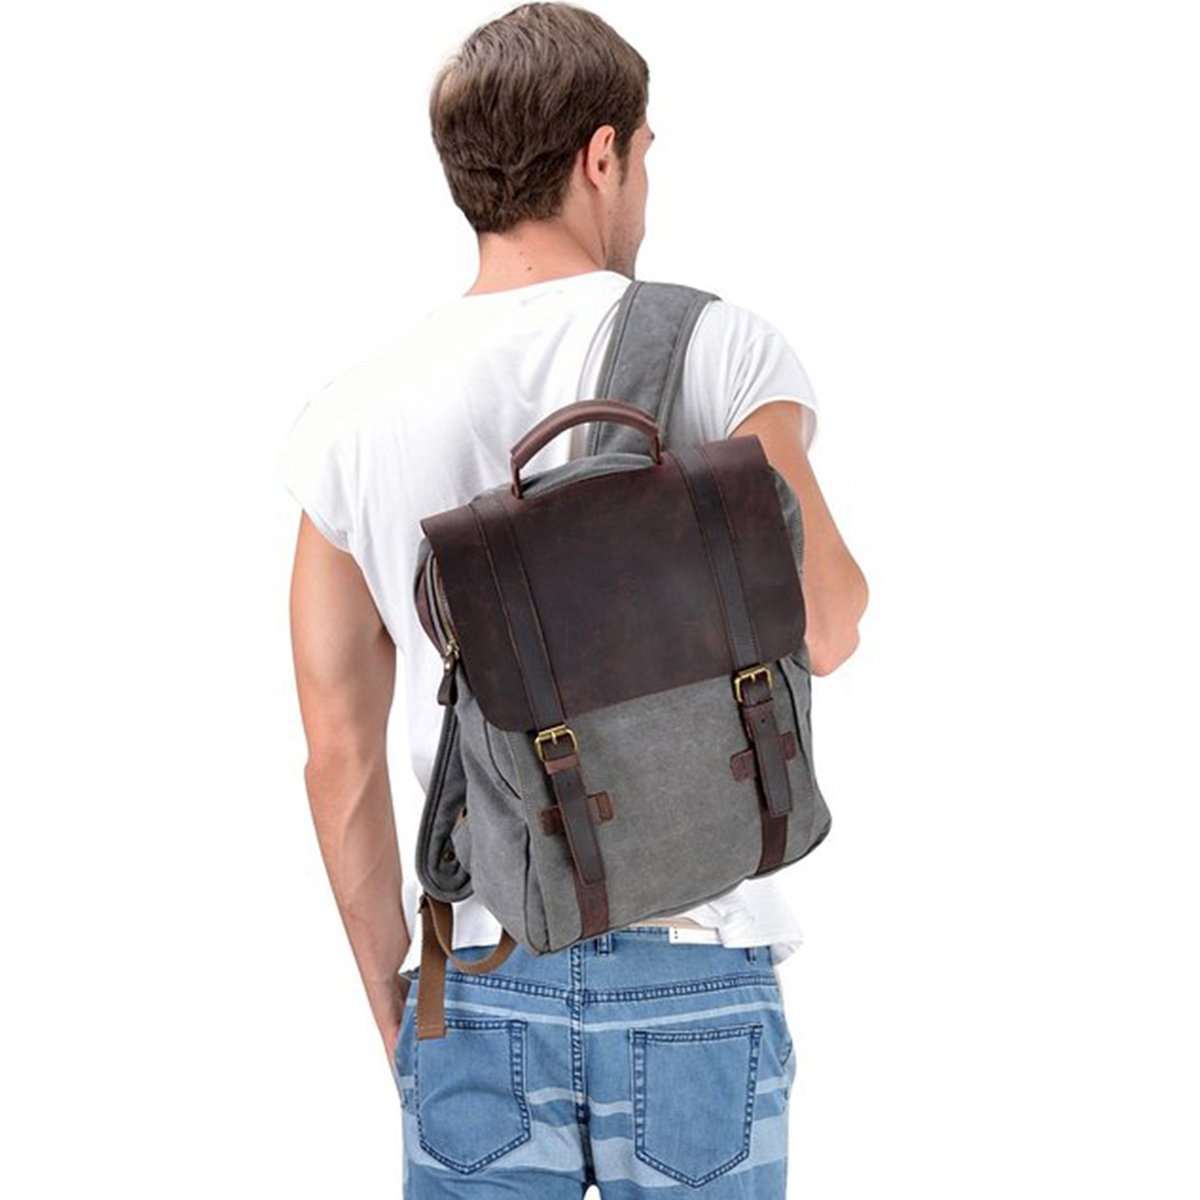 S-ZONE Retro Canvas Leather School Travel Backpack Rucksack 15.6-inch Laptop Bag Dark Gray S-ZONE <a href=